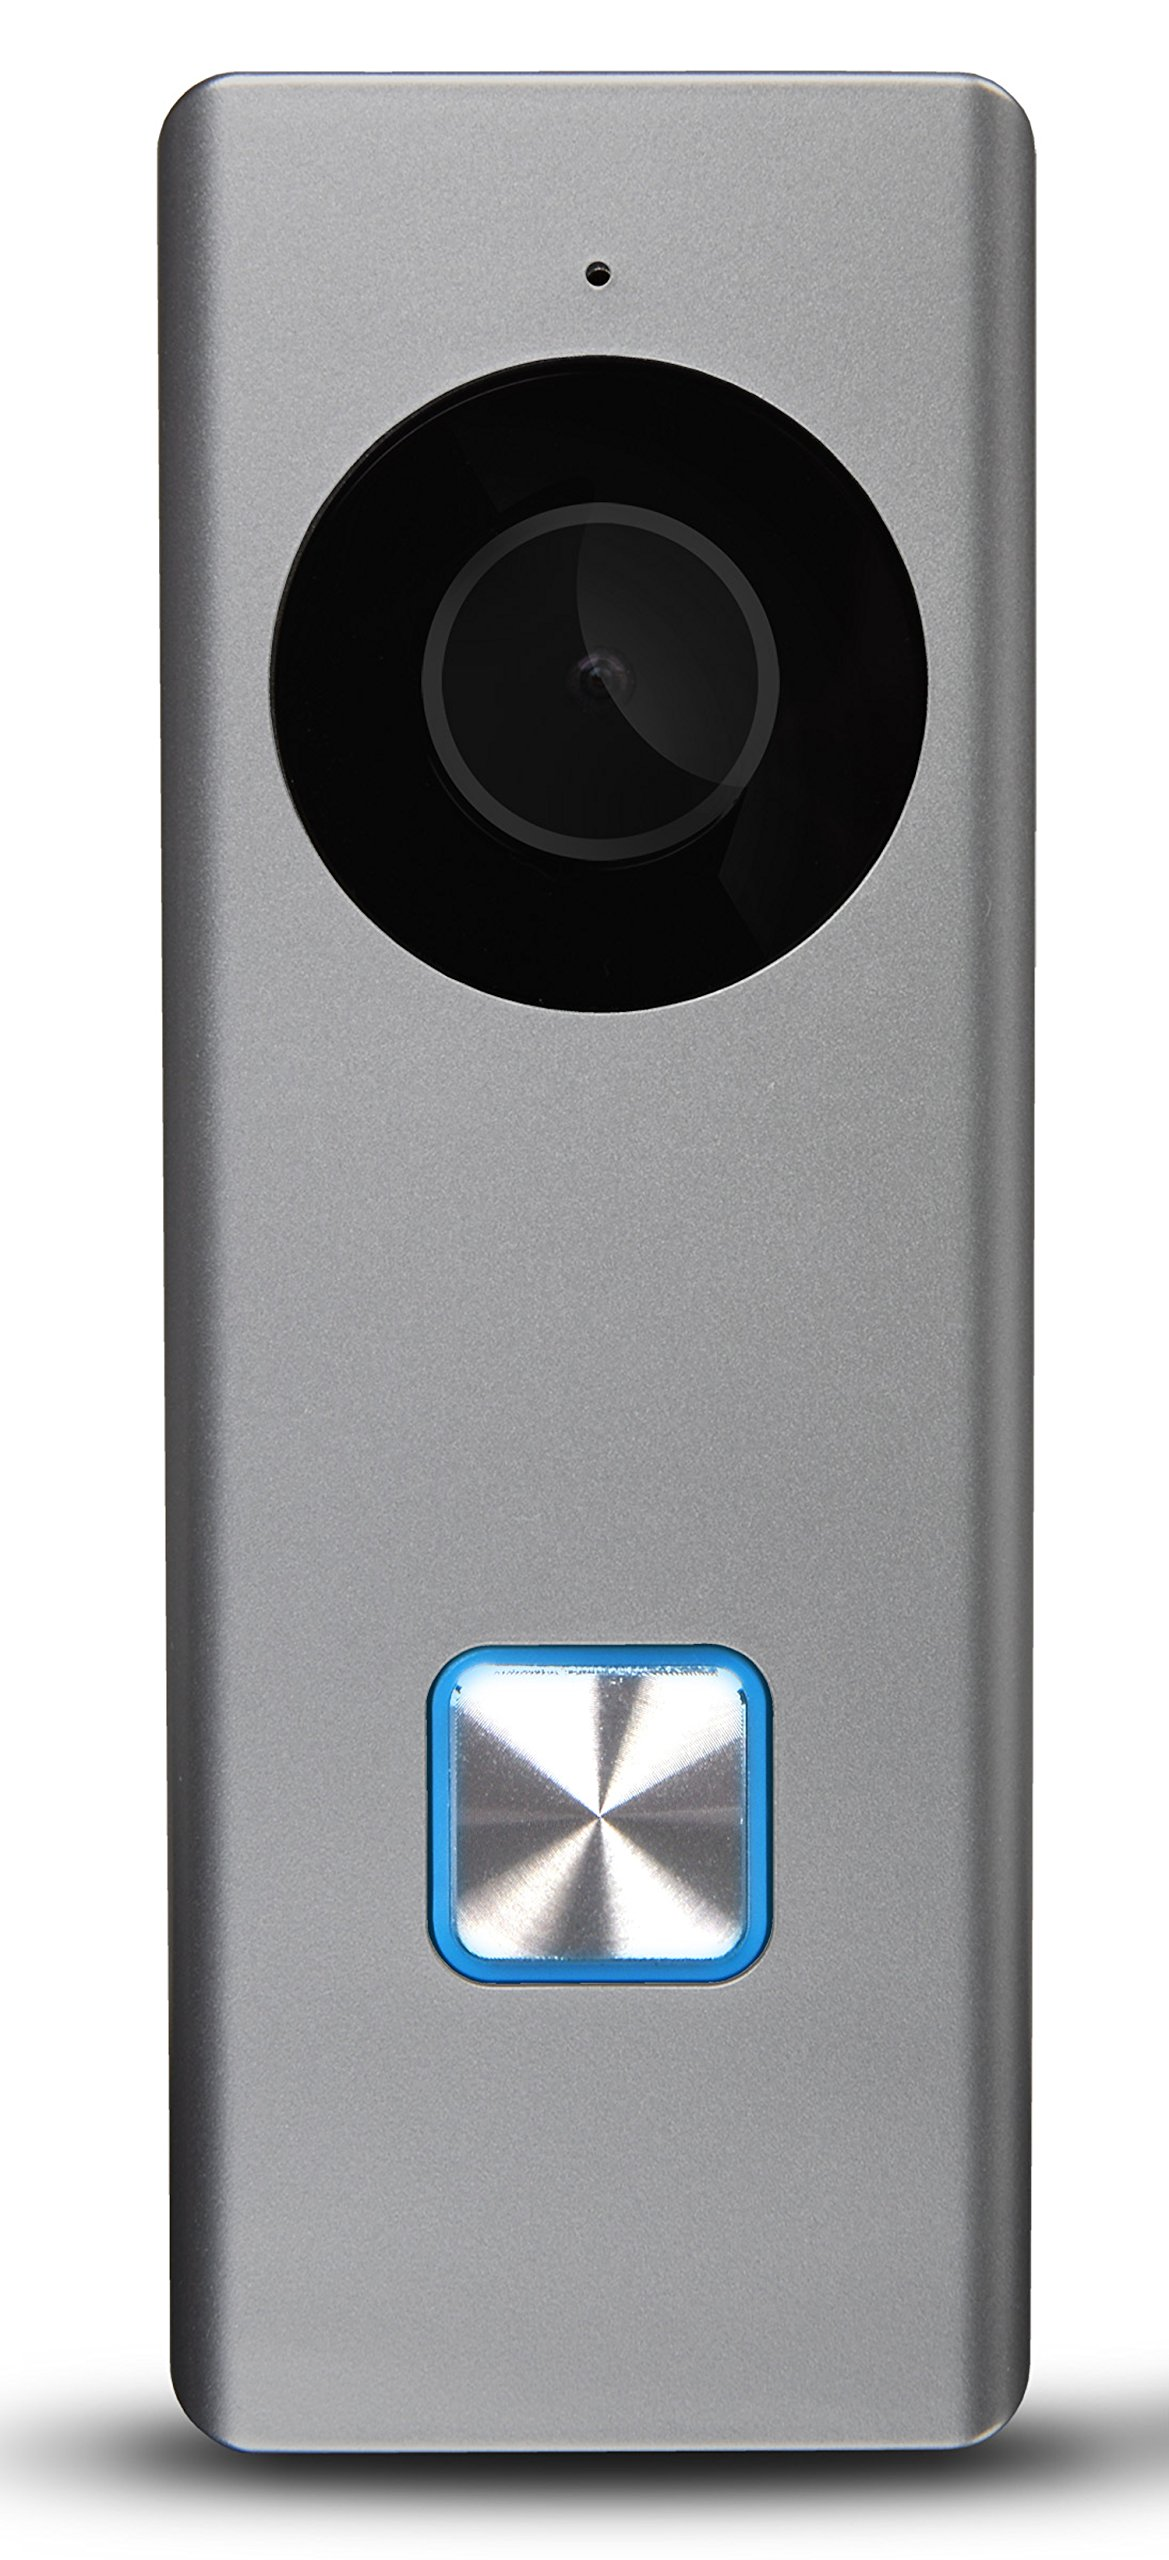 RCA Smart Doorbell Home Security Wifi Video Camera with Mobile Doorbell Ring,16GB Micro SD Card, 2-Way Talk, Night Vision and Motion Detection. Works w/ iOS, iPhone, Android, Samsung, Google and more! by RCA (Image #7)